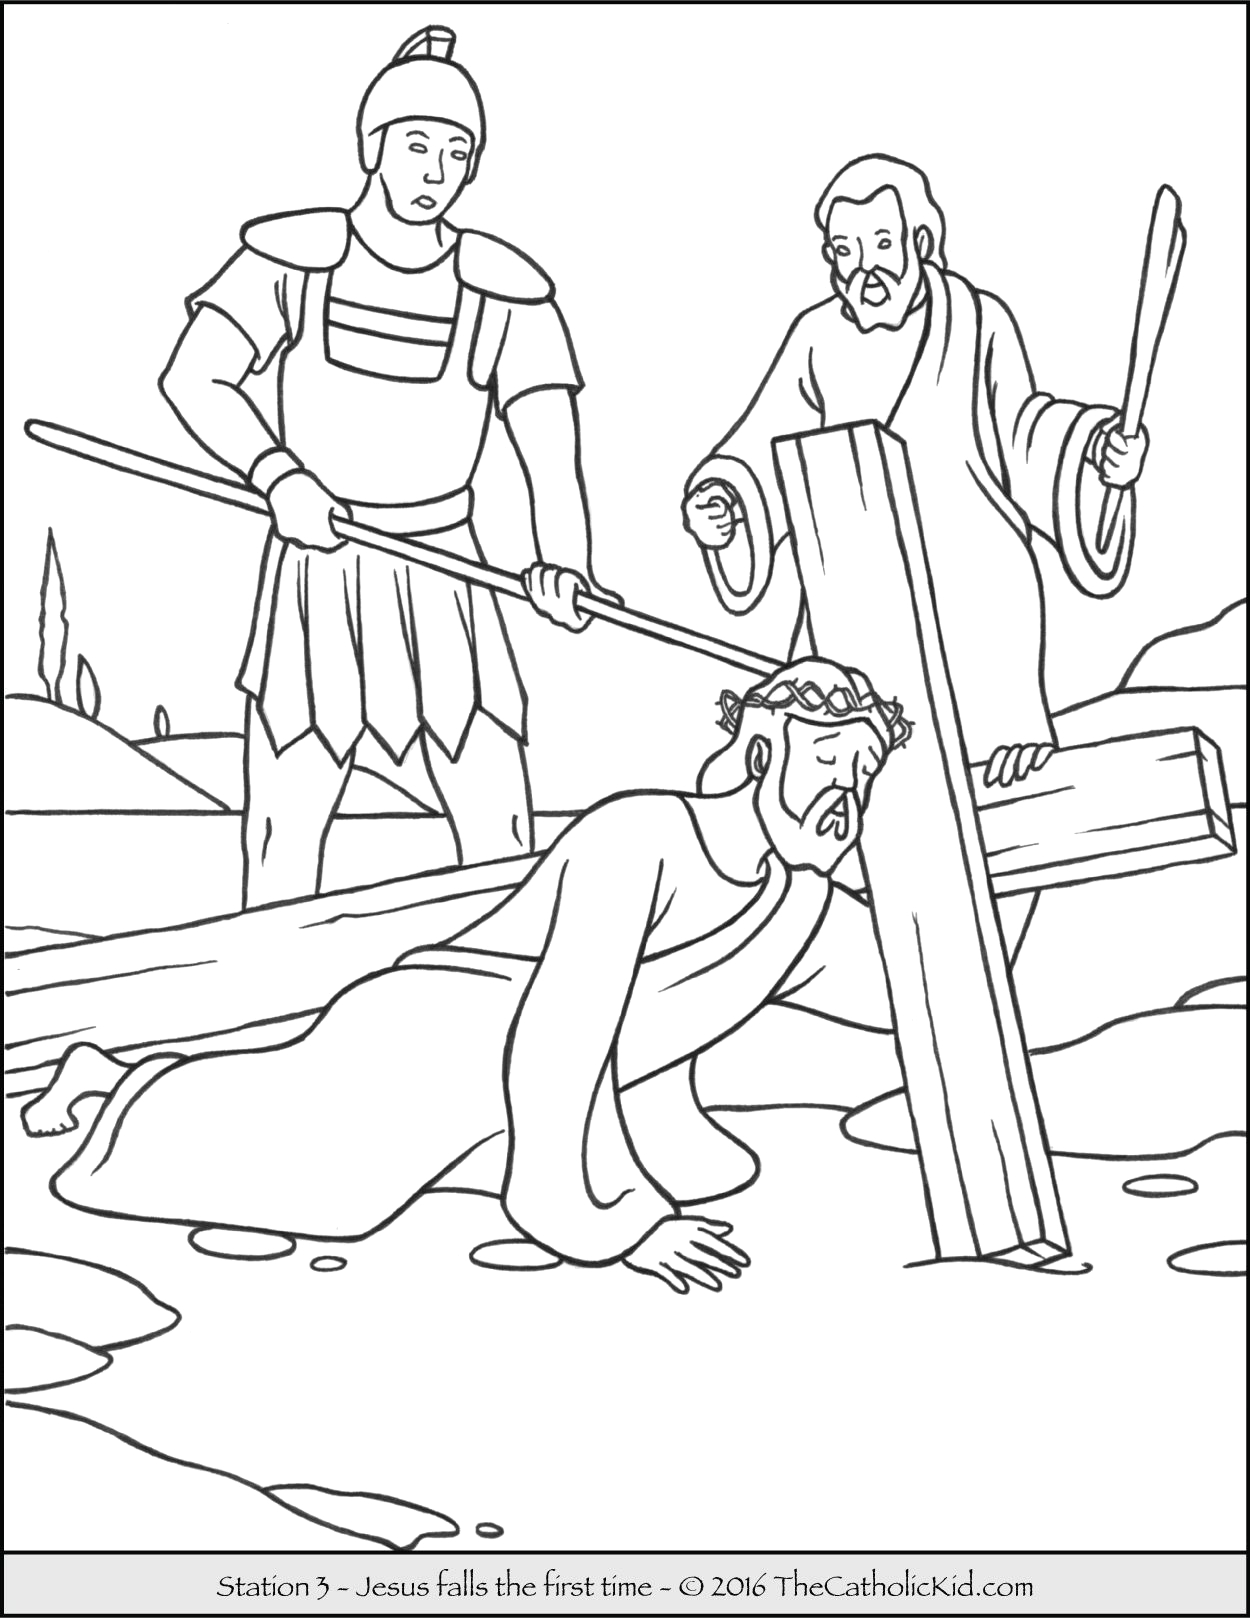 Coloring Pages for Stations Of the Cross Stations the Cross Coloring Page Coloring Home